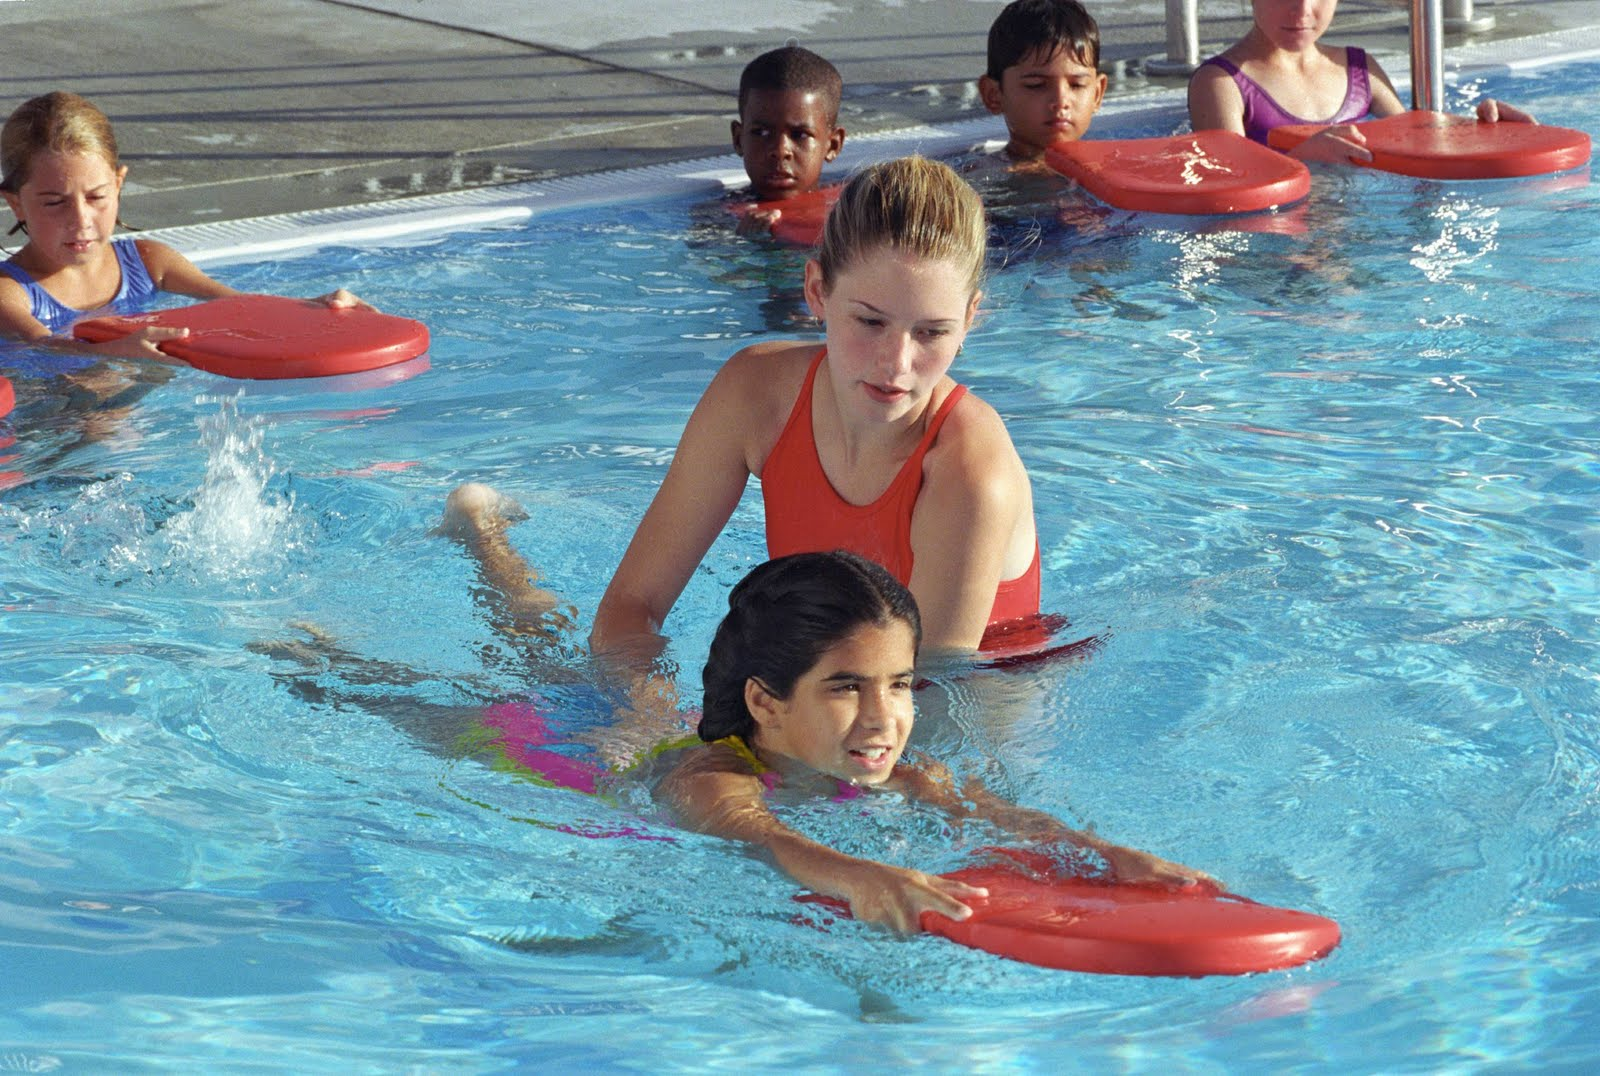 Swim Lessons Lifeguard Training Wsi Certification